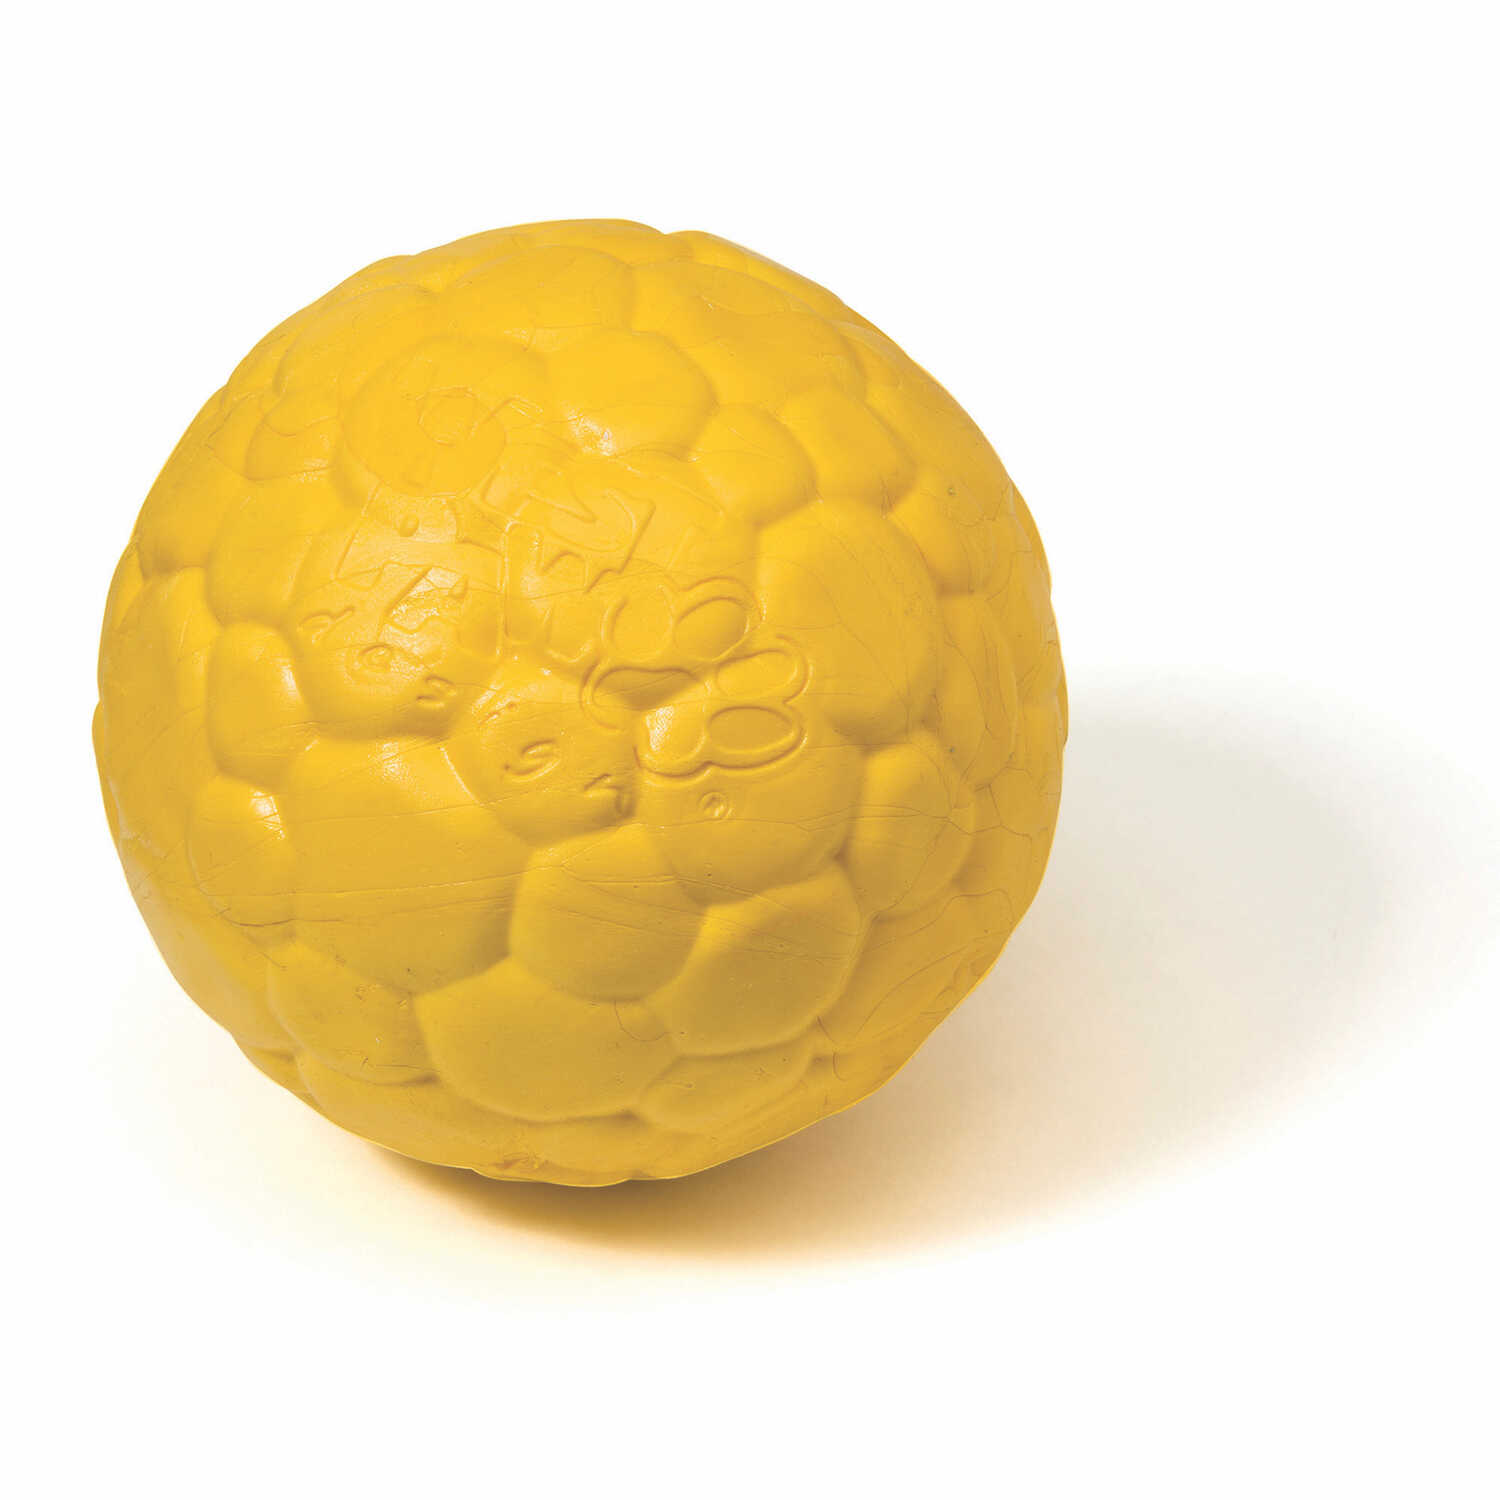 West Paw  Zogoflex Air  Yellow  Synthetic Rubber  Boz  Ball Dog Toy  Medium